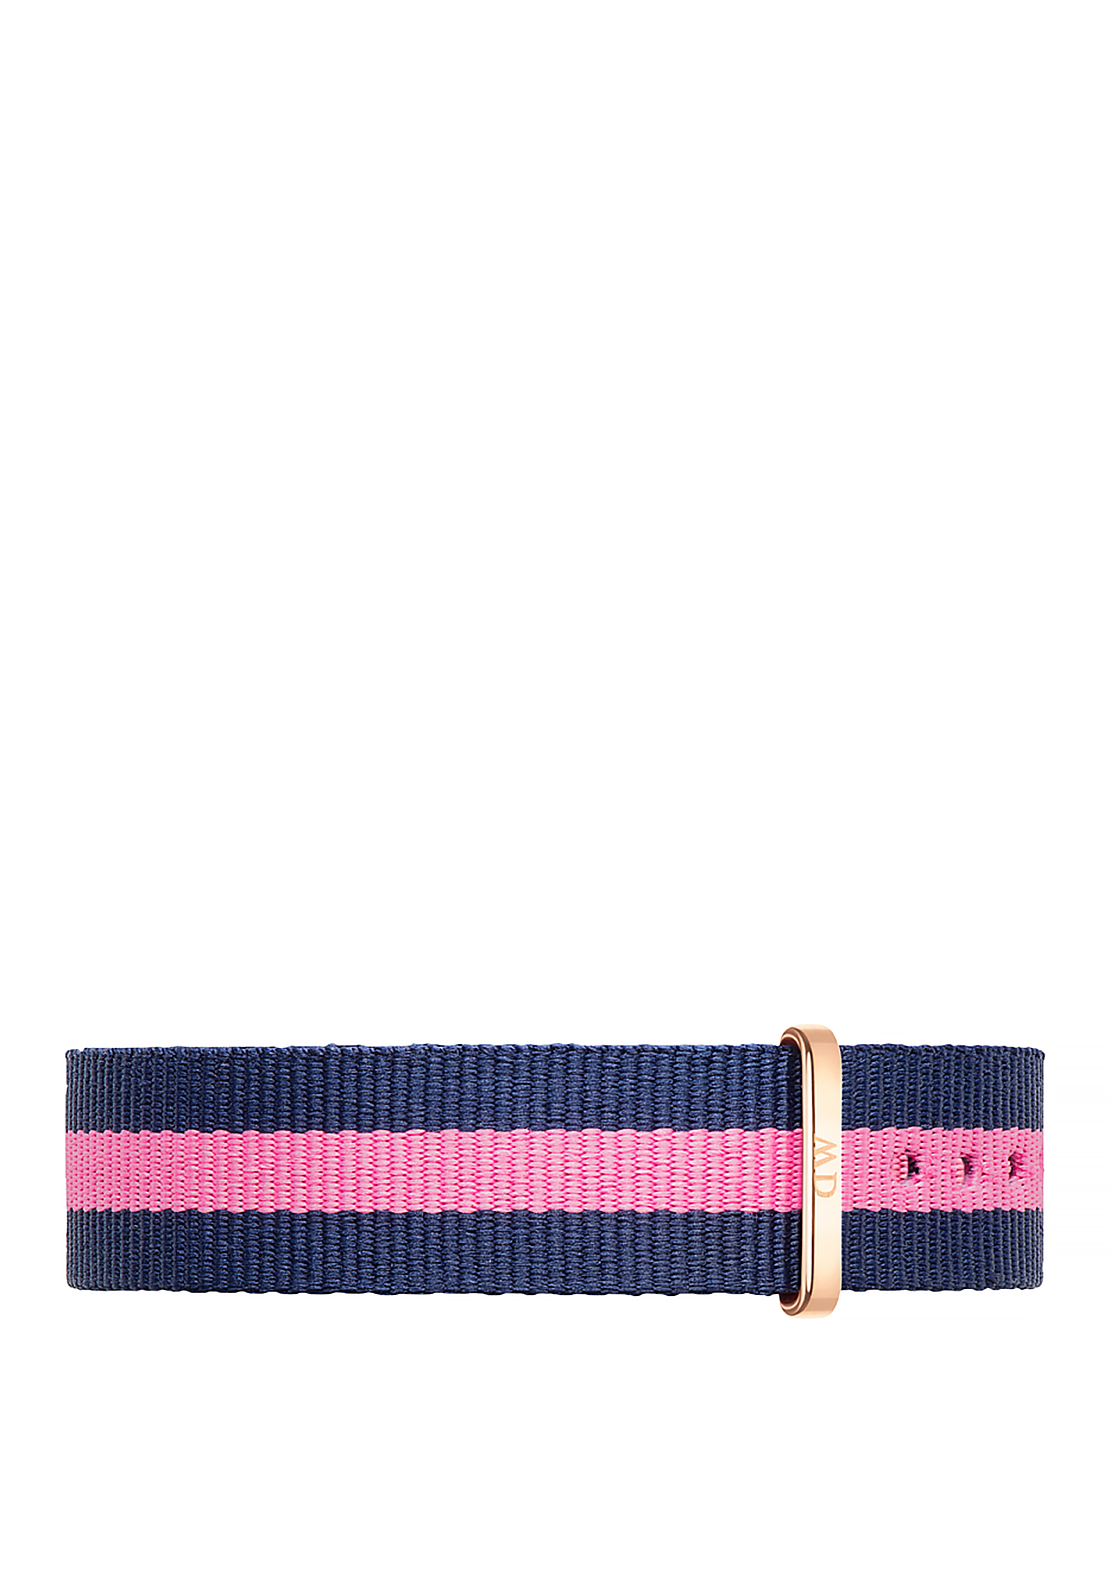 Daniel Wellington Classic Winchester Wristband Strap 18mm Rose Gold, Pink & Navy